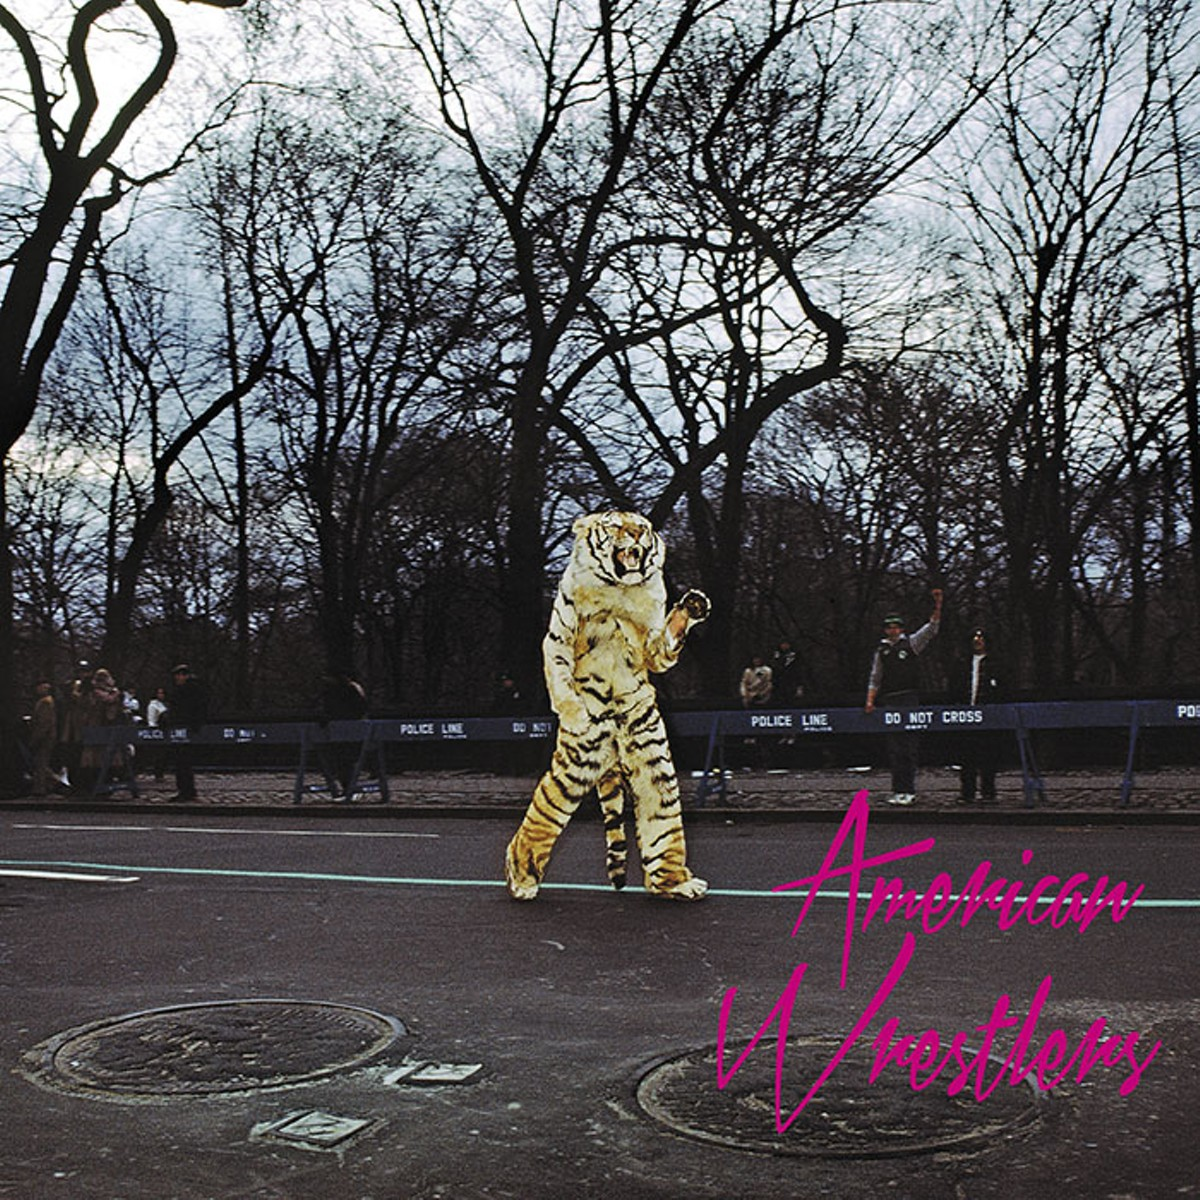 American Wrestlers' excellent self-titled album.